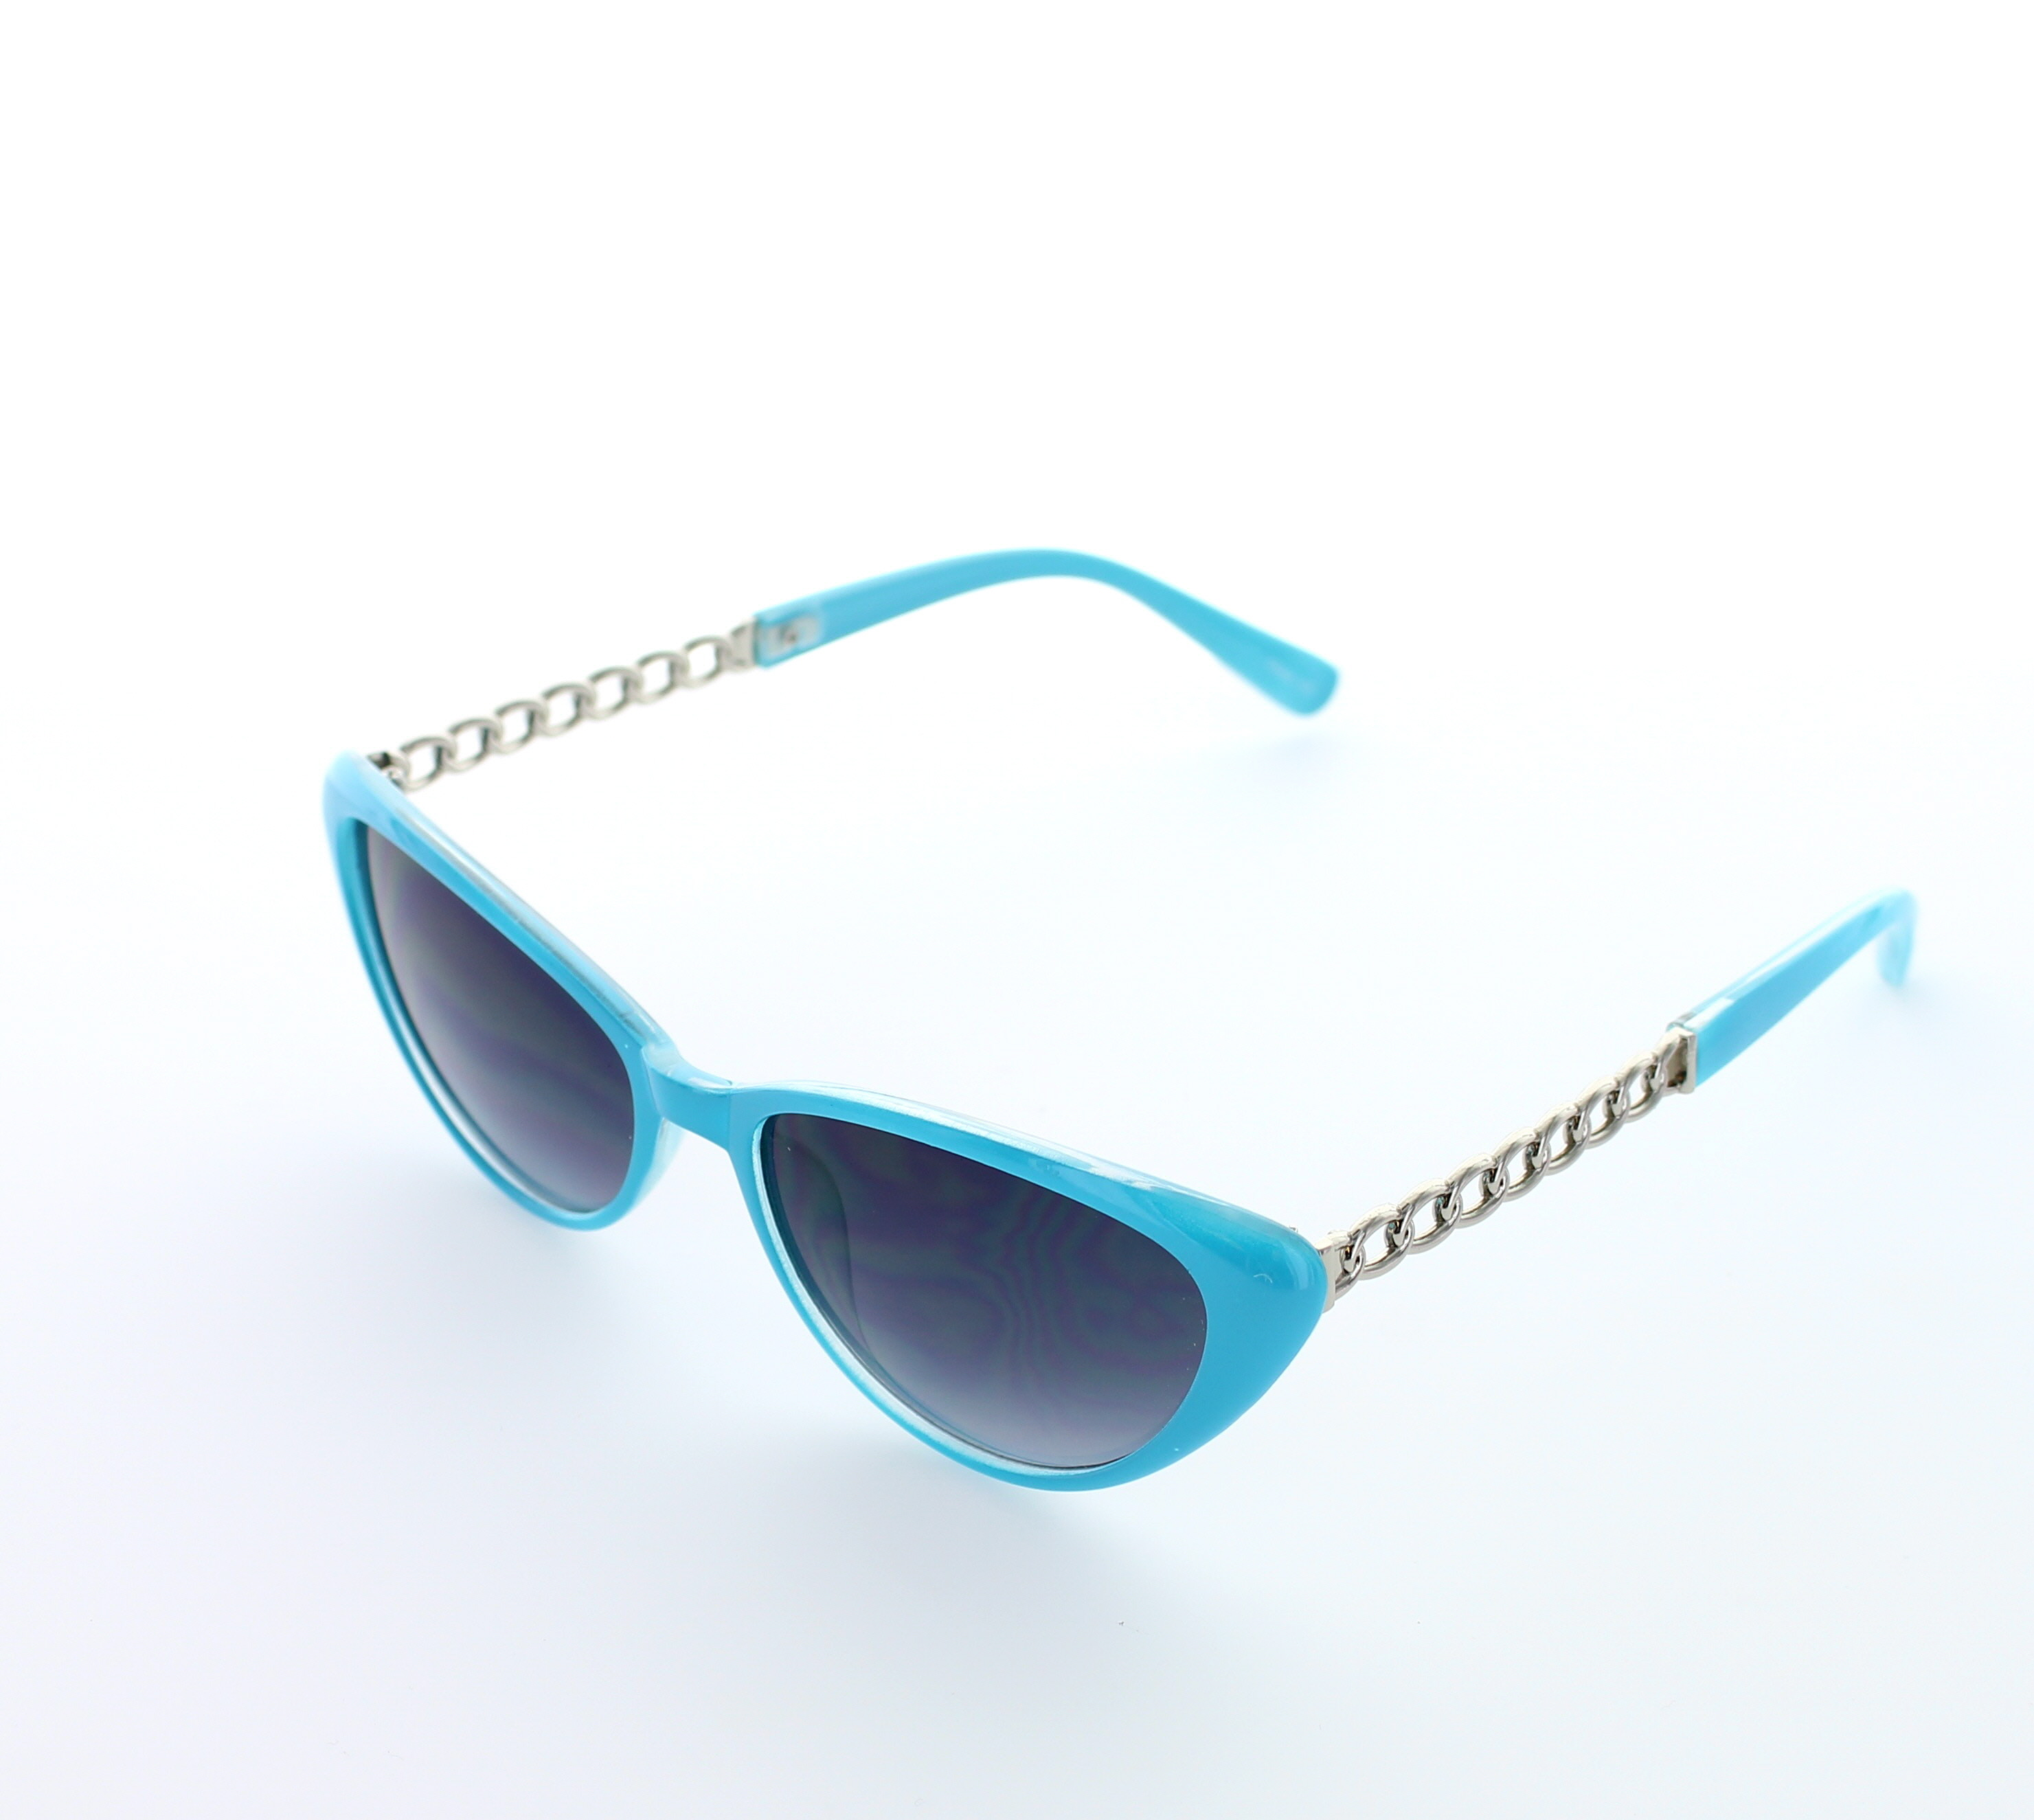 Fashion sunglasses online store 61